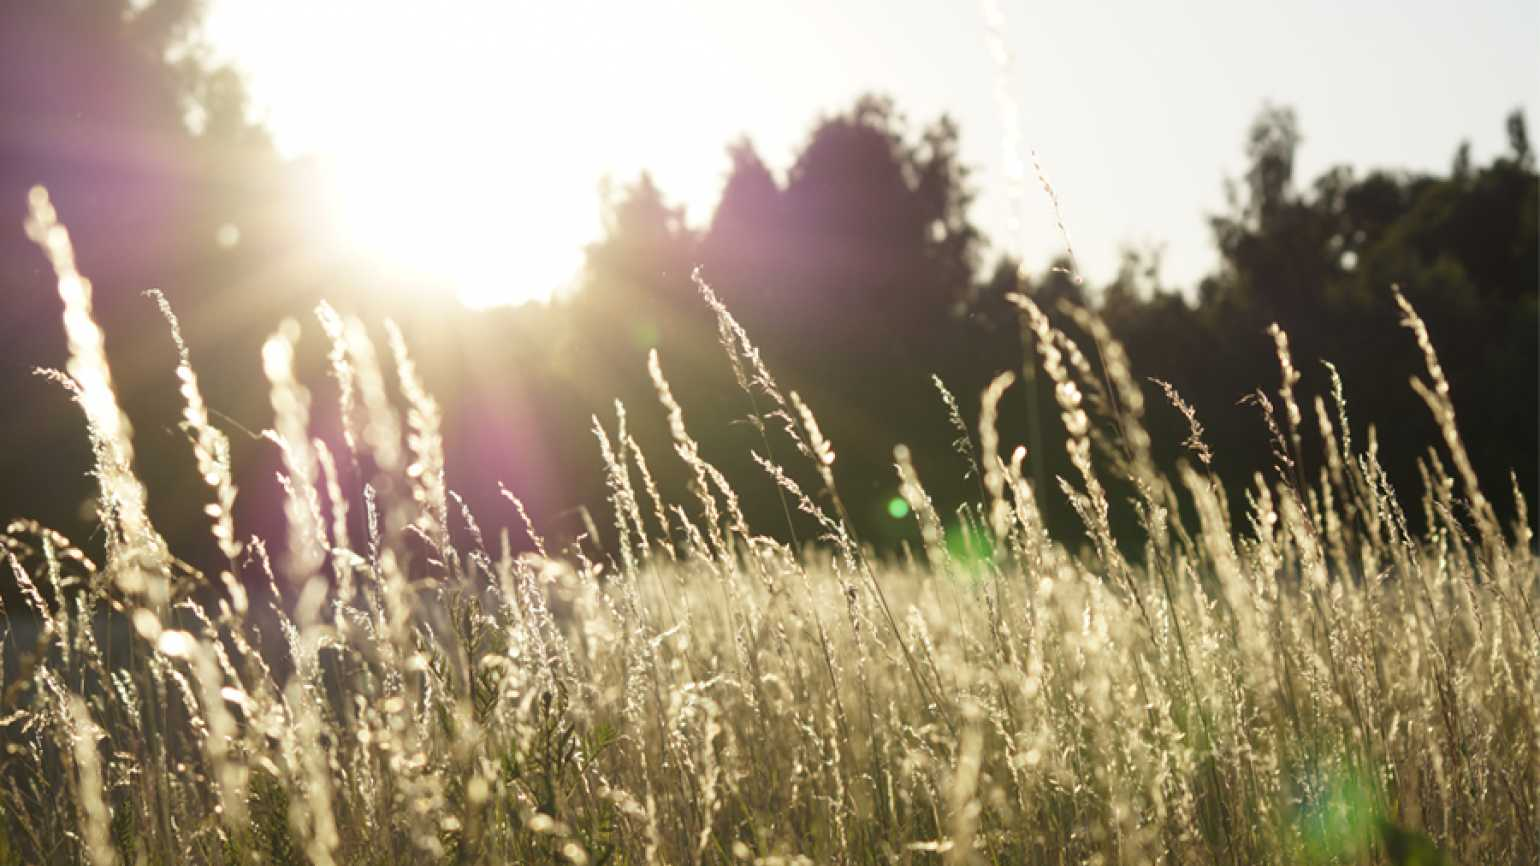 Grassy landscape with sunlight